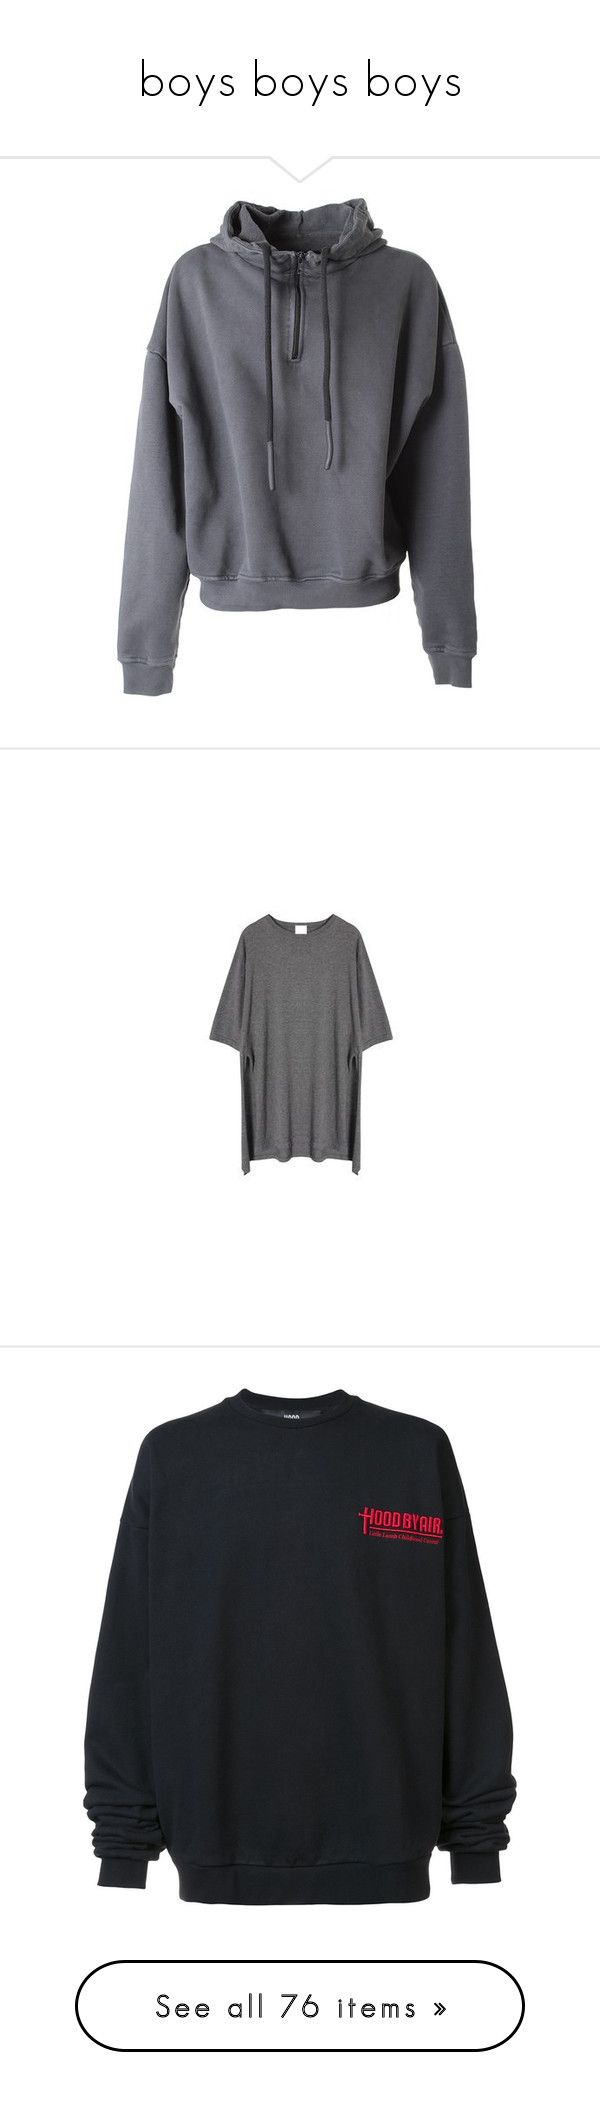 """""""boys boys boys"""" by victoria-mars ❤ liked on Polyvore featuring dresses, shirts, tops, clothes - tops, women, t shirt dress, t-shirt dresses, cotton tee dress, cotton t shirt dress and short sleeve dress"""